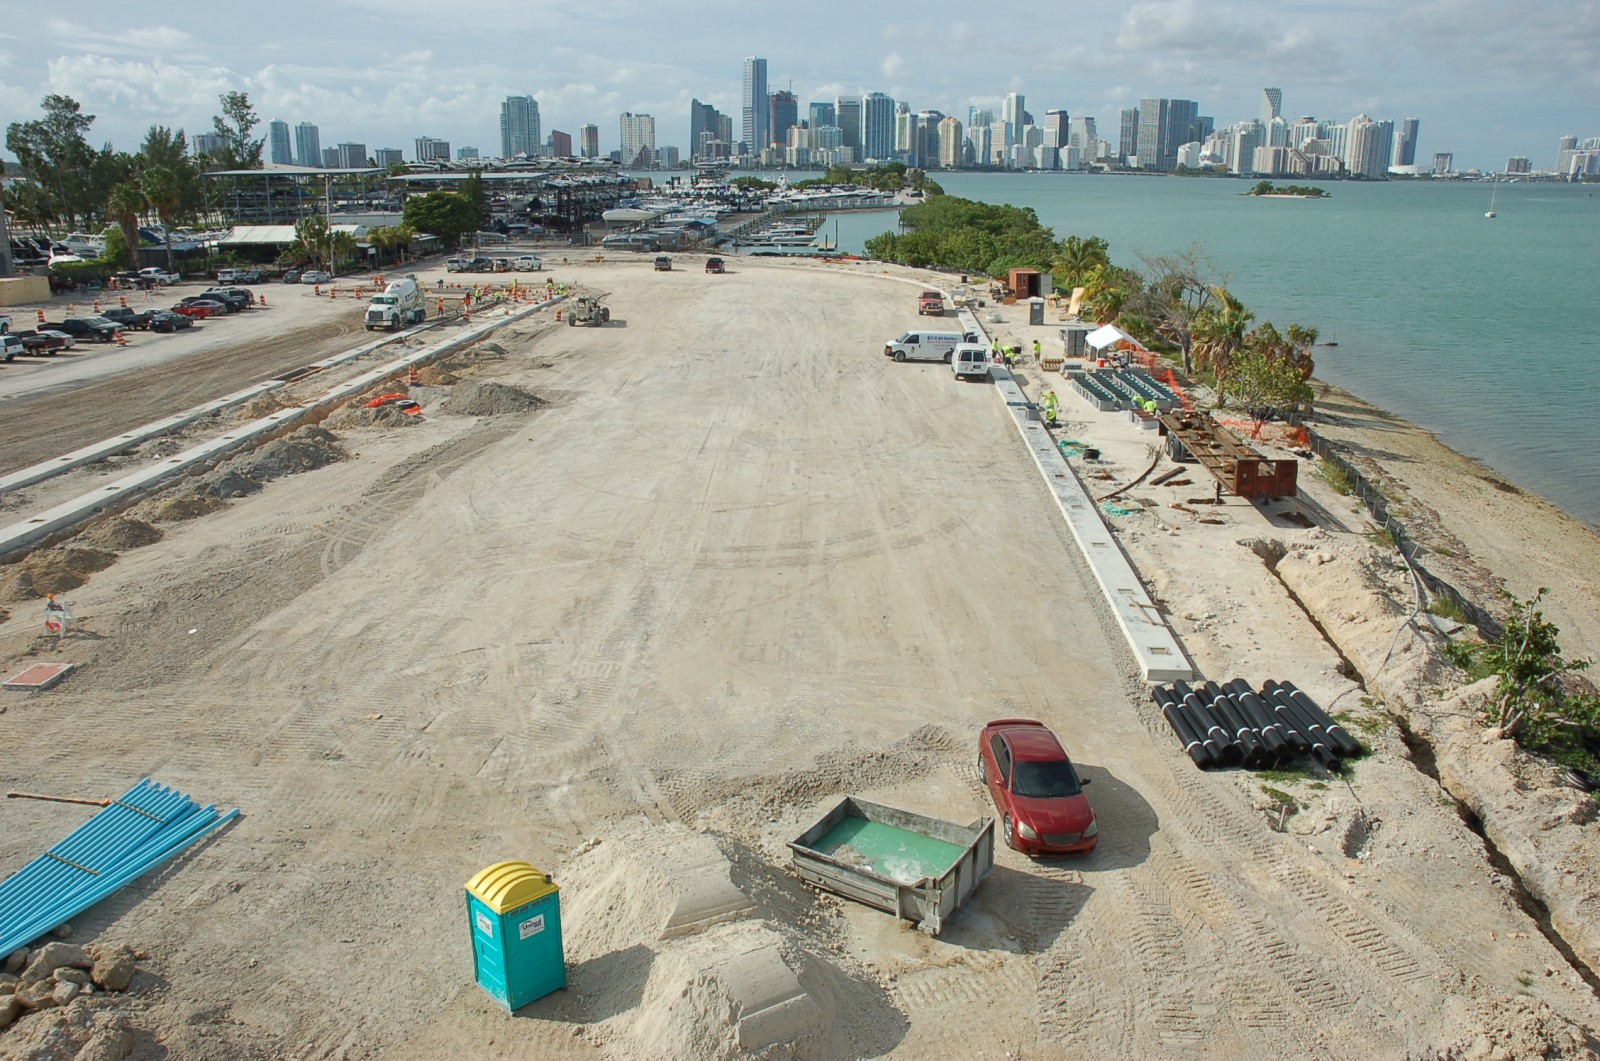 This year's 75th annual Miami International Boat Show will be held at a new location around Miami Marine Stadium, which has been closed since Hurricane Andrew in 1992. PHOTO/DORIE COX